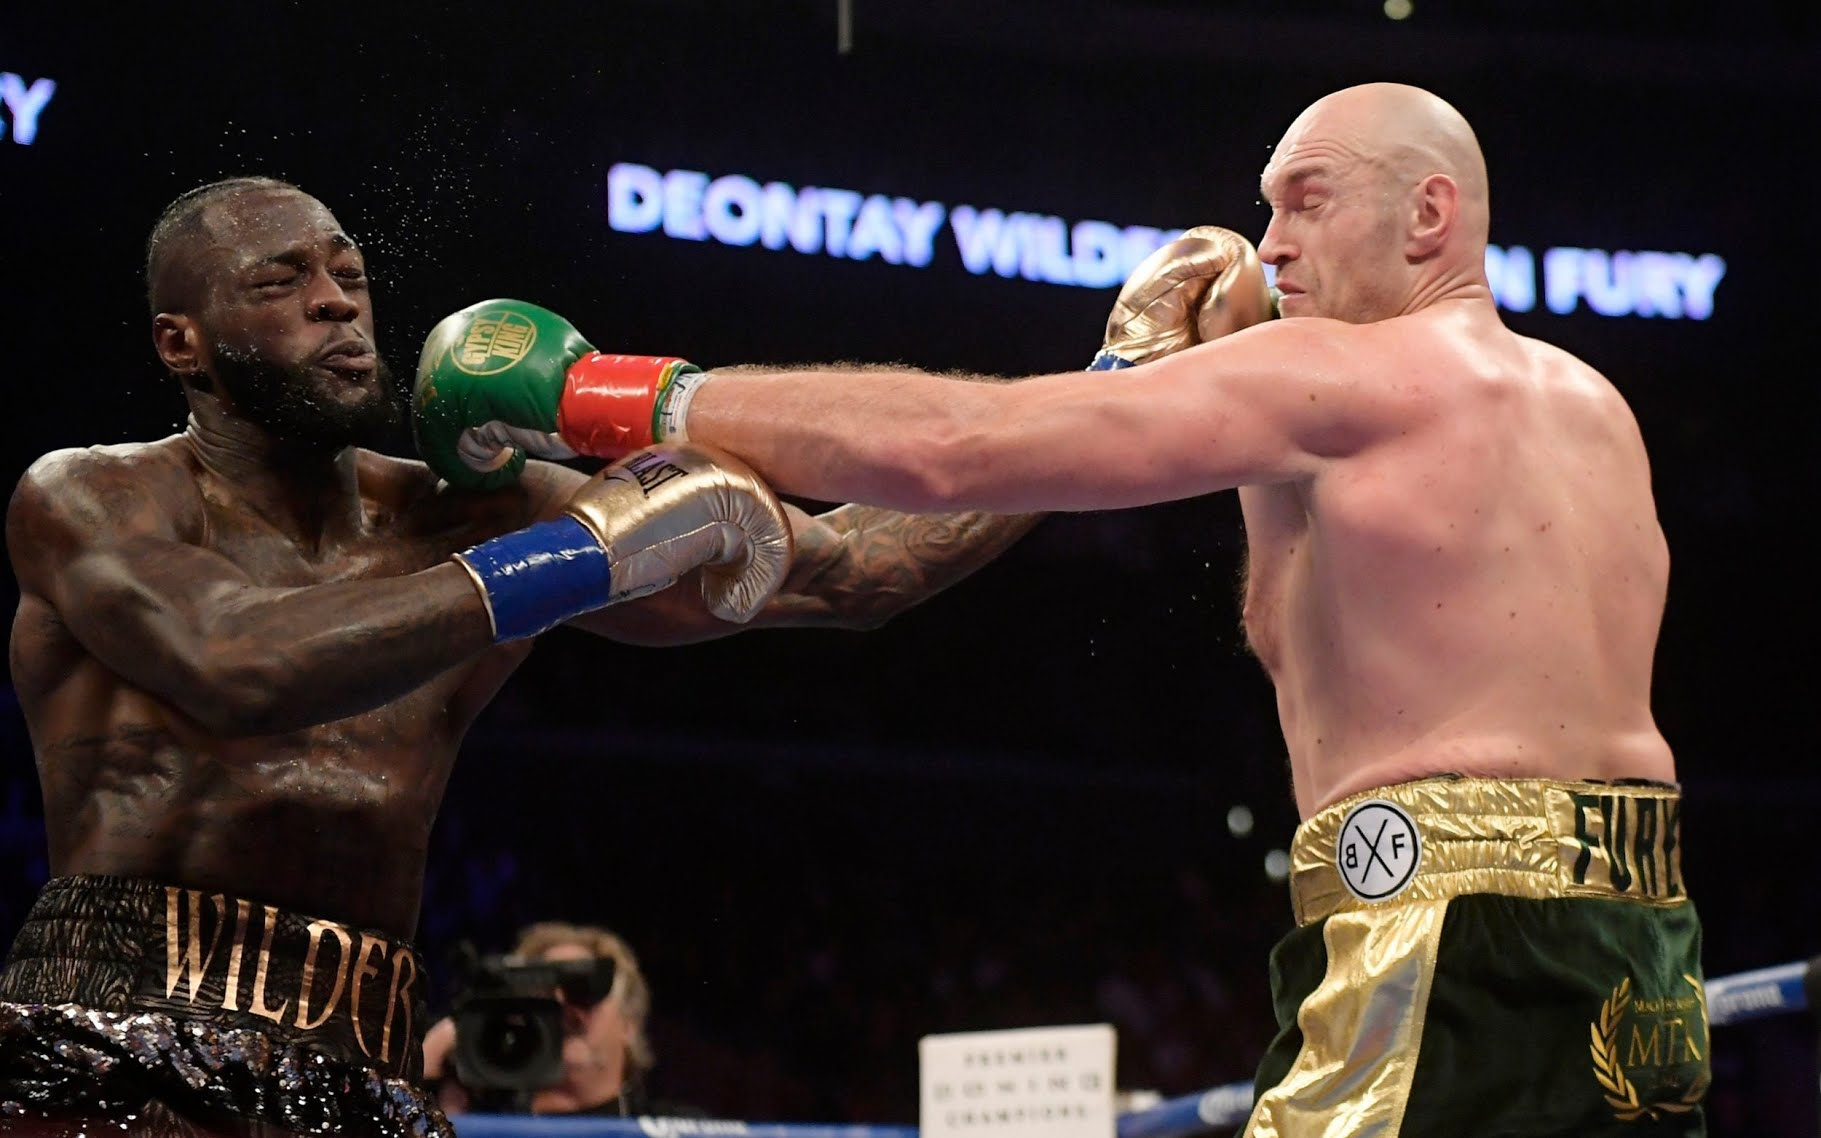 Deontay Wilder vs Tyson Fury 2- Nigerian Time